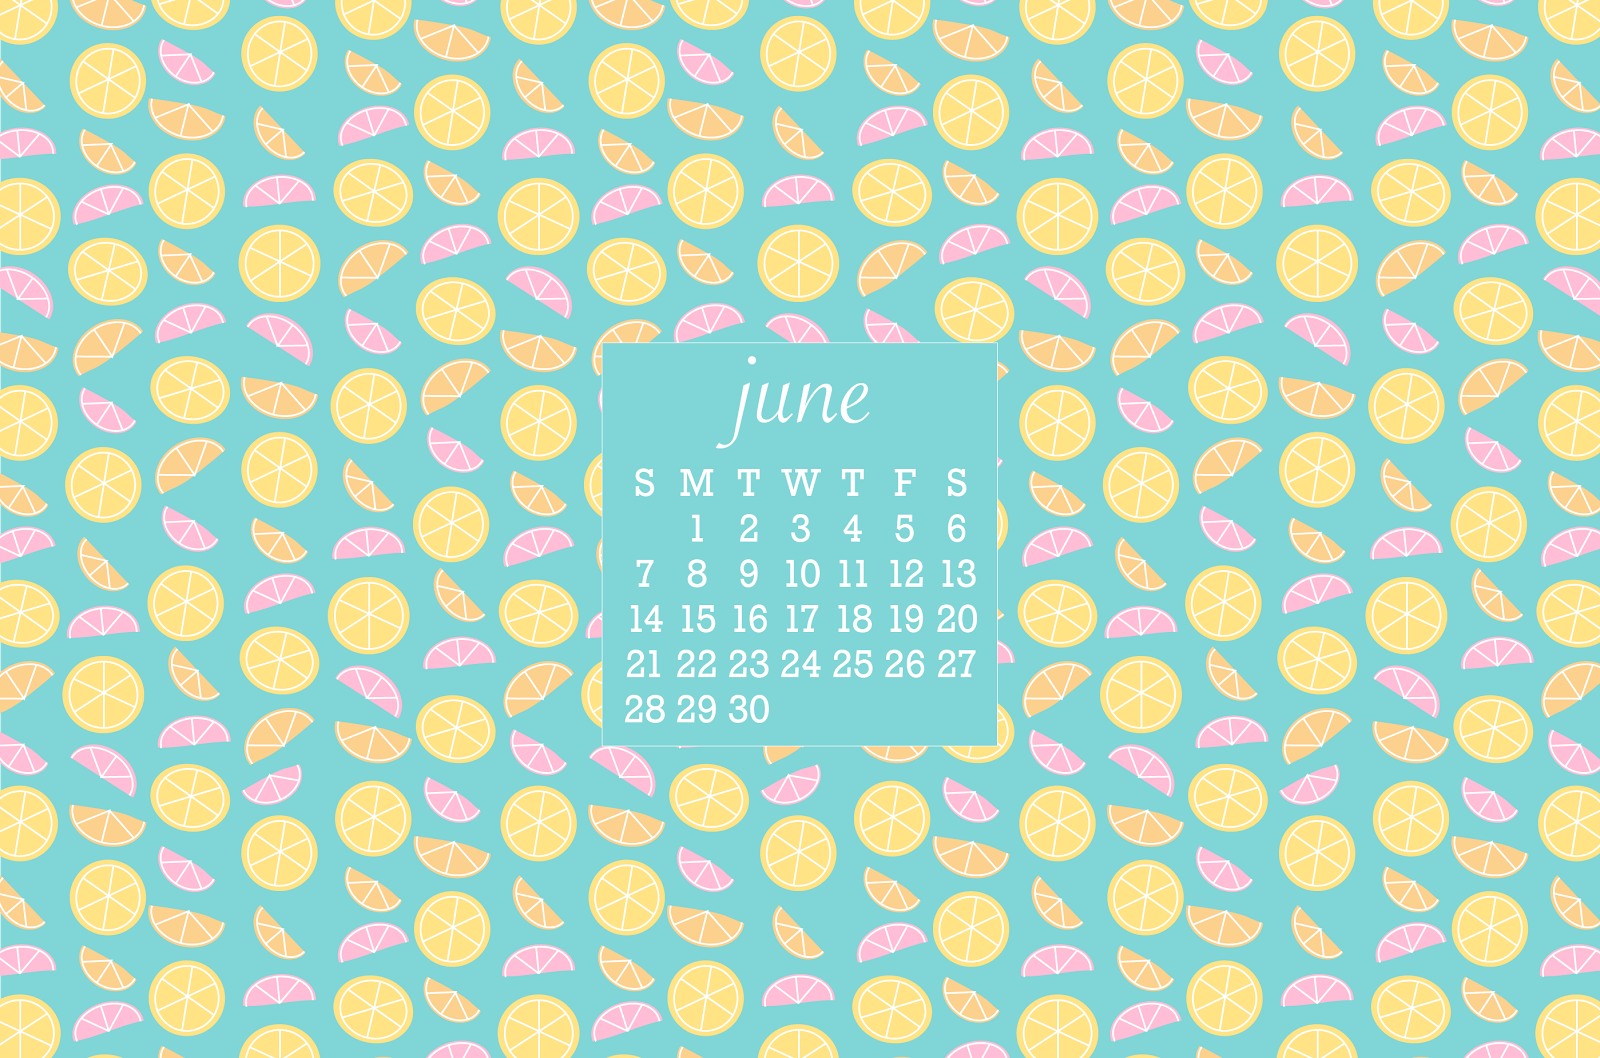 Kate Calendar Wallpaper : Get cinched planners notebooks and checklists on